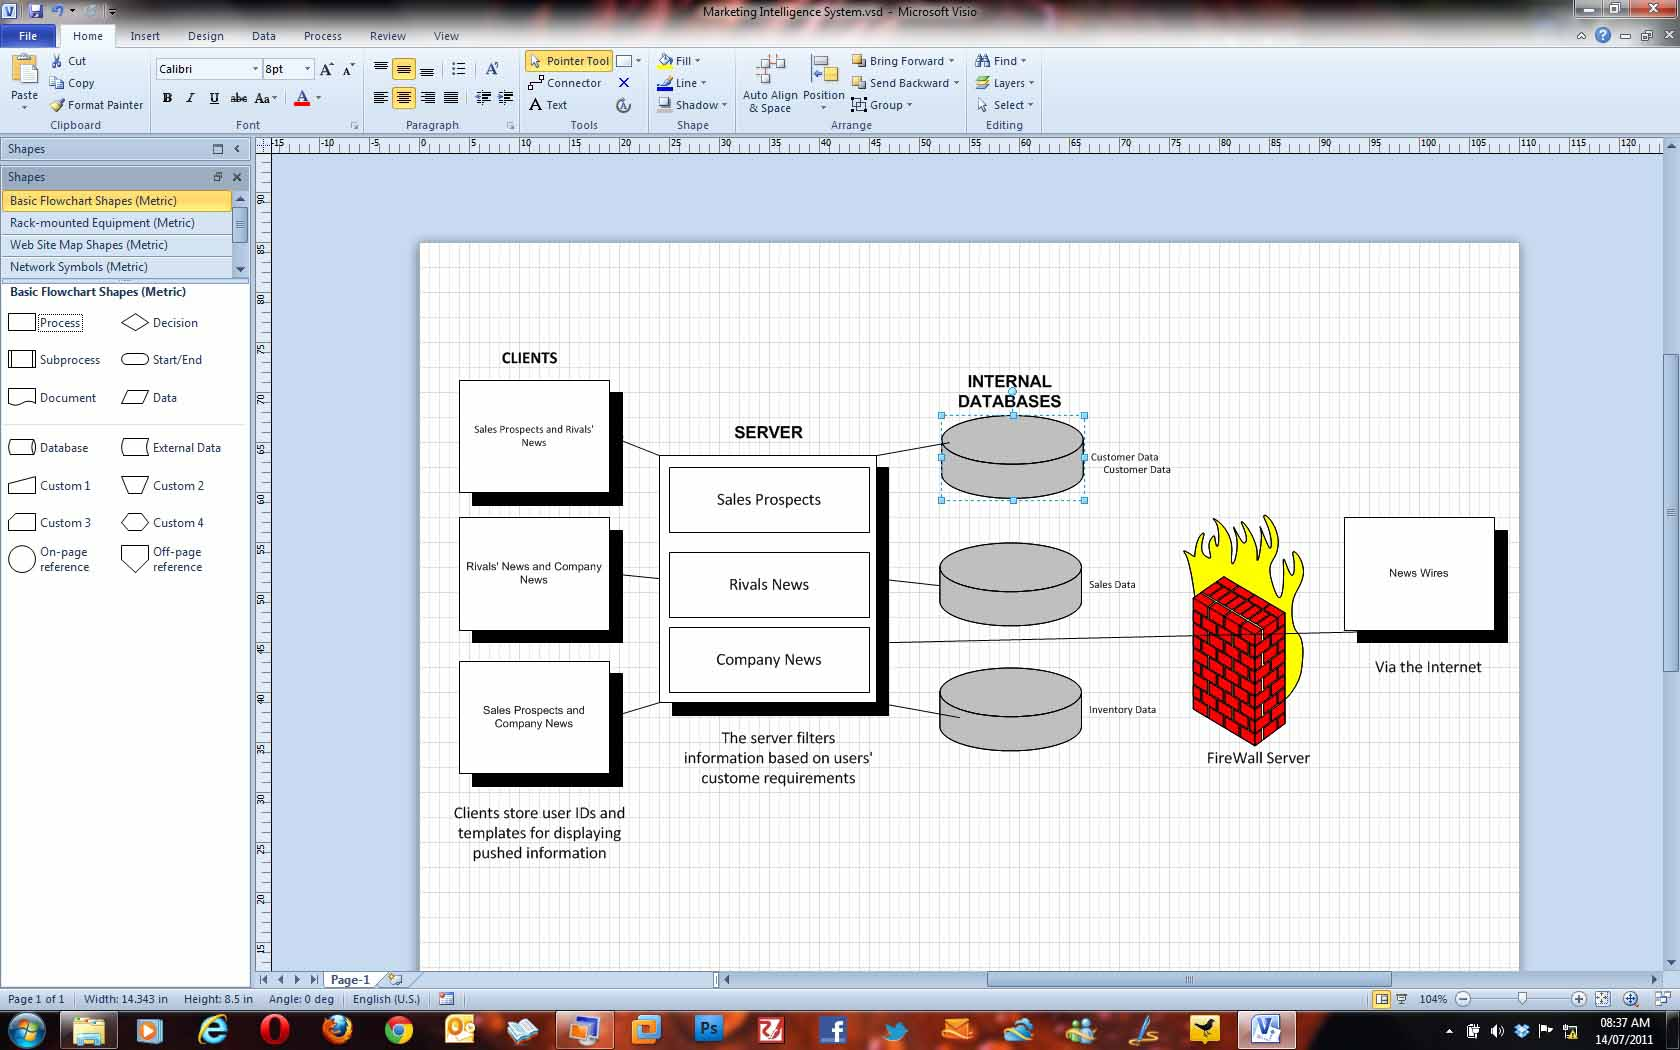 microsoft office design diagrams with Visio2010 on Country Flag Icons additionally Concept Slides Powerpoint Template likewise Data Linked Diagrams Creating A Diagram together with BPMN 2 0 Modeler For Visio further Gg398095.